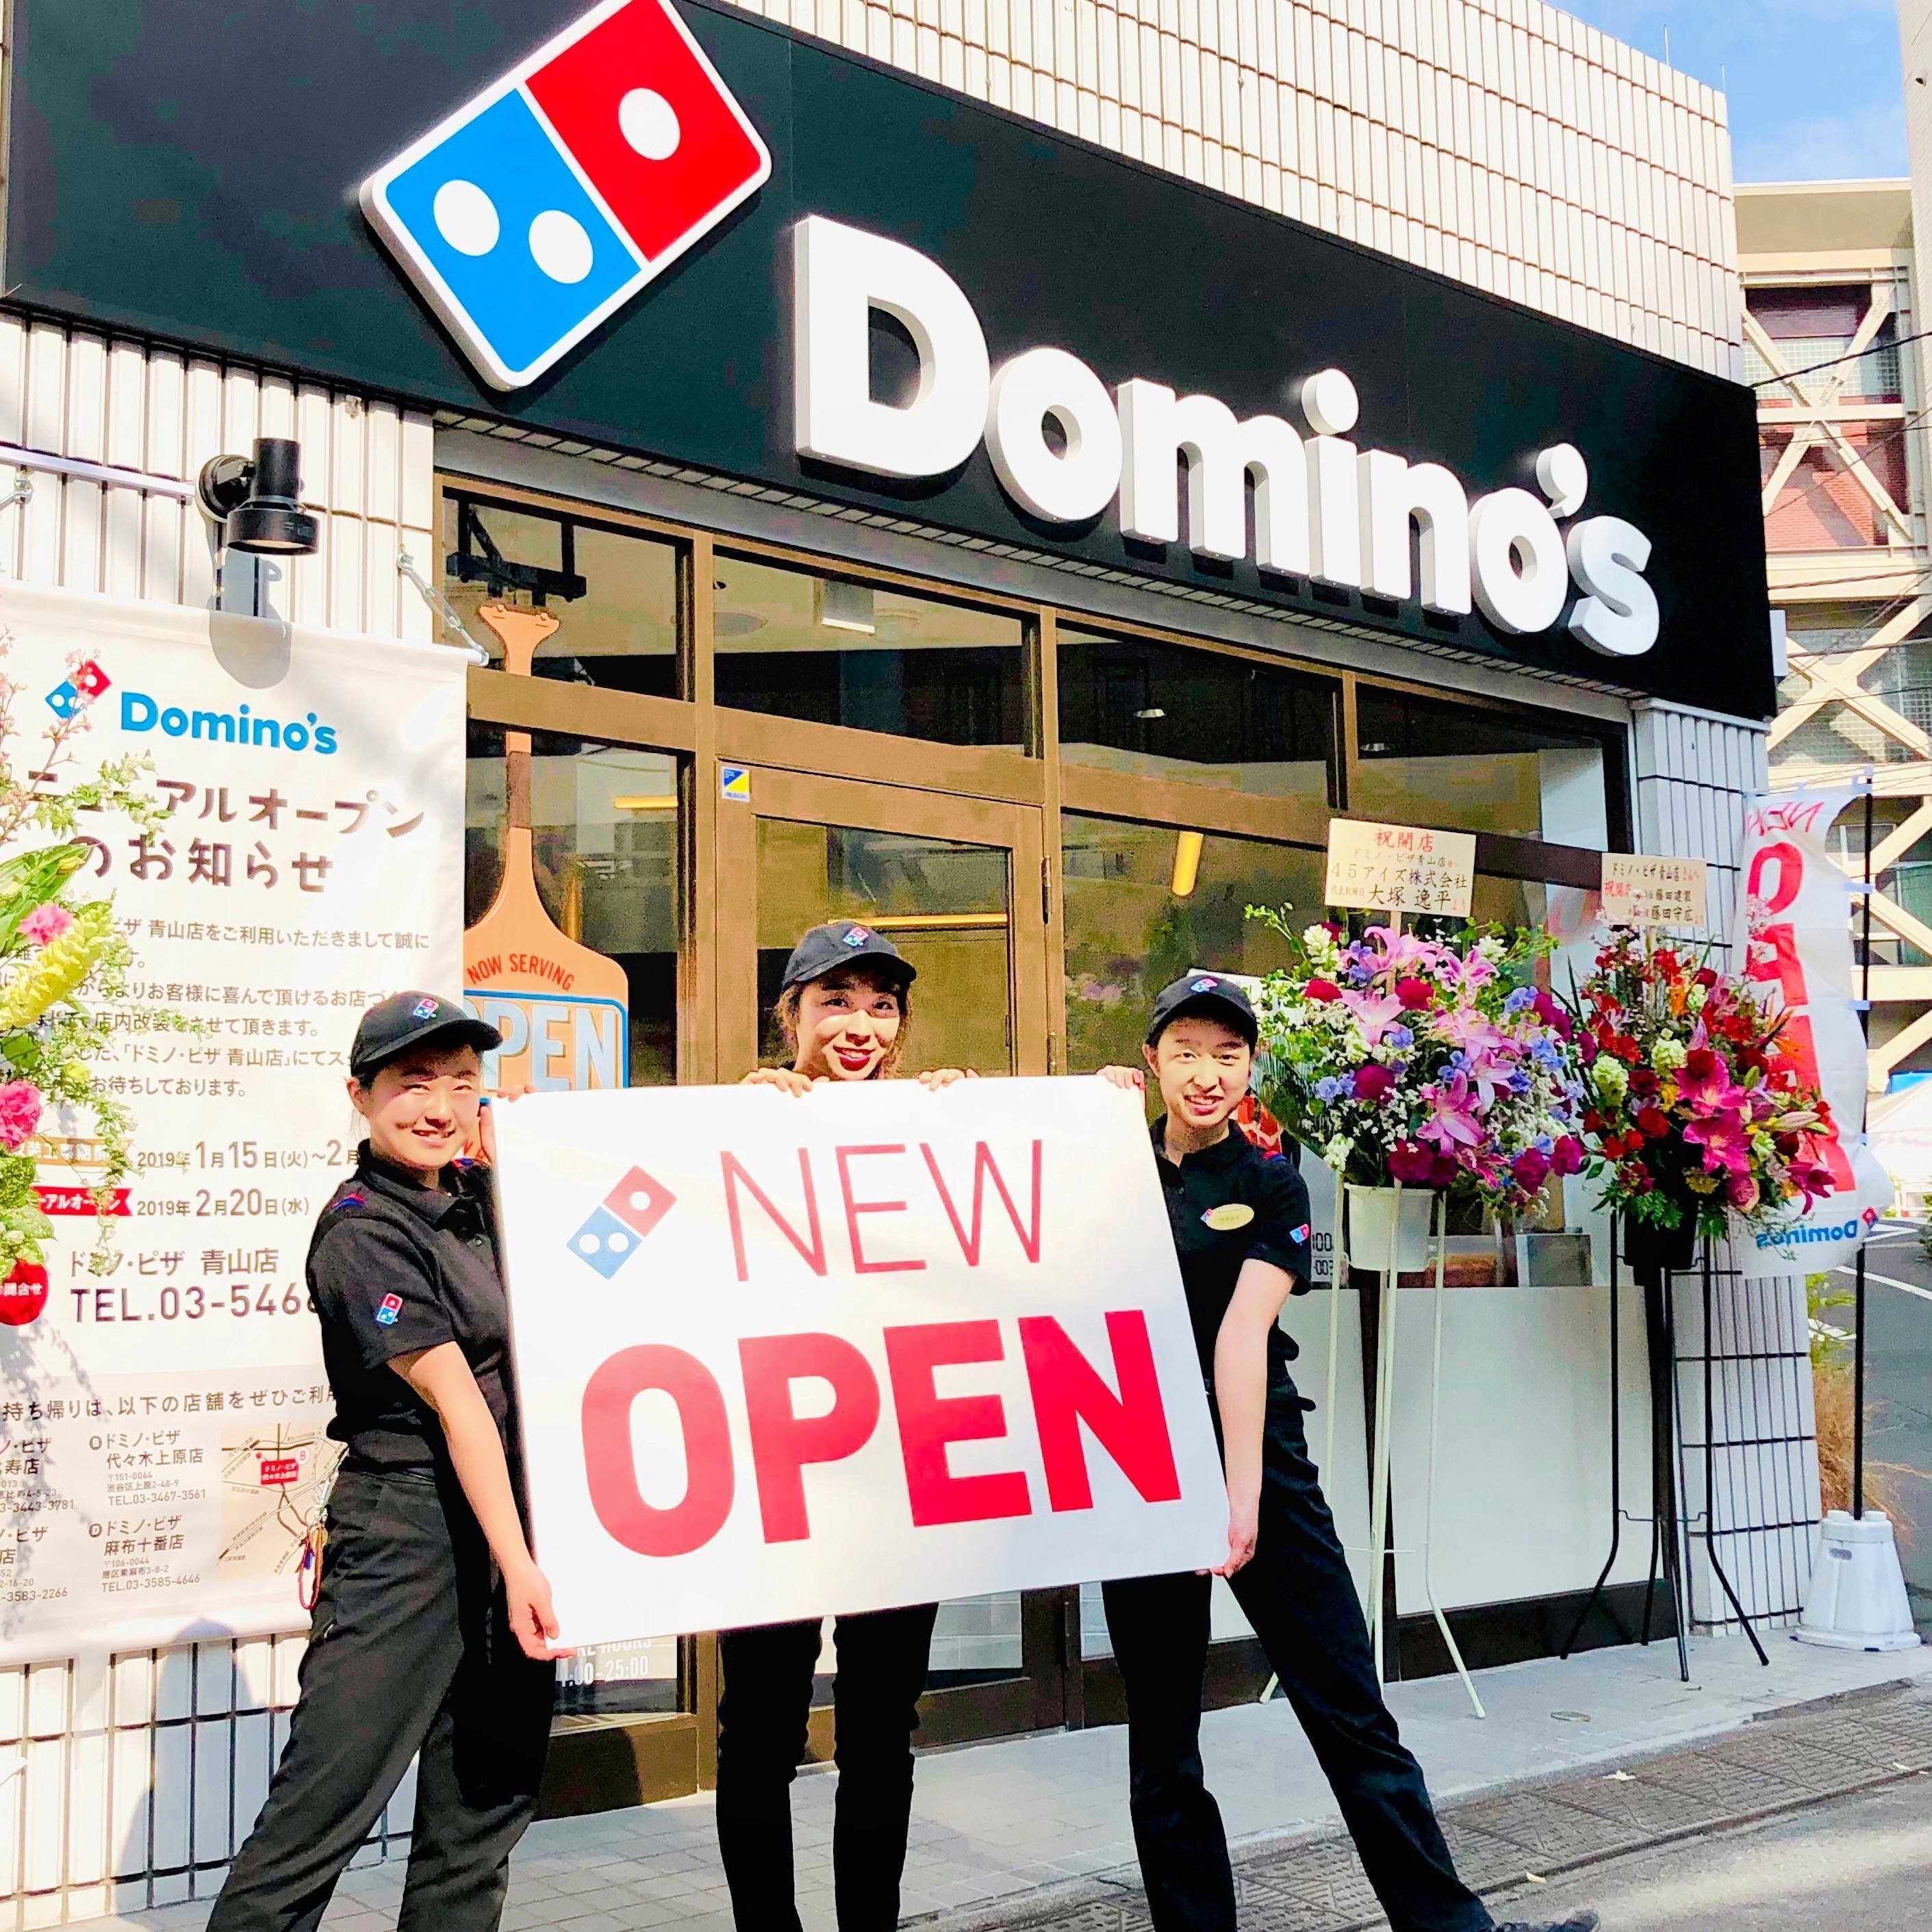 【Staff can receive 50% discounts】Pizza delivery person wanted!(Can work 3 hours or more in Sekiguchi-Mejiro)